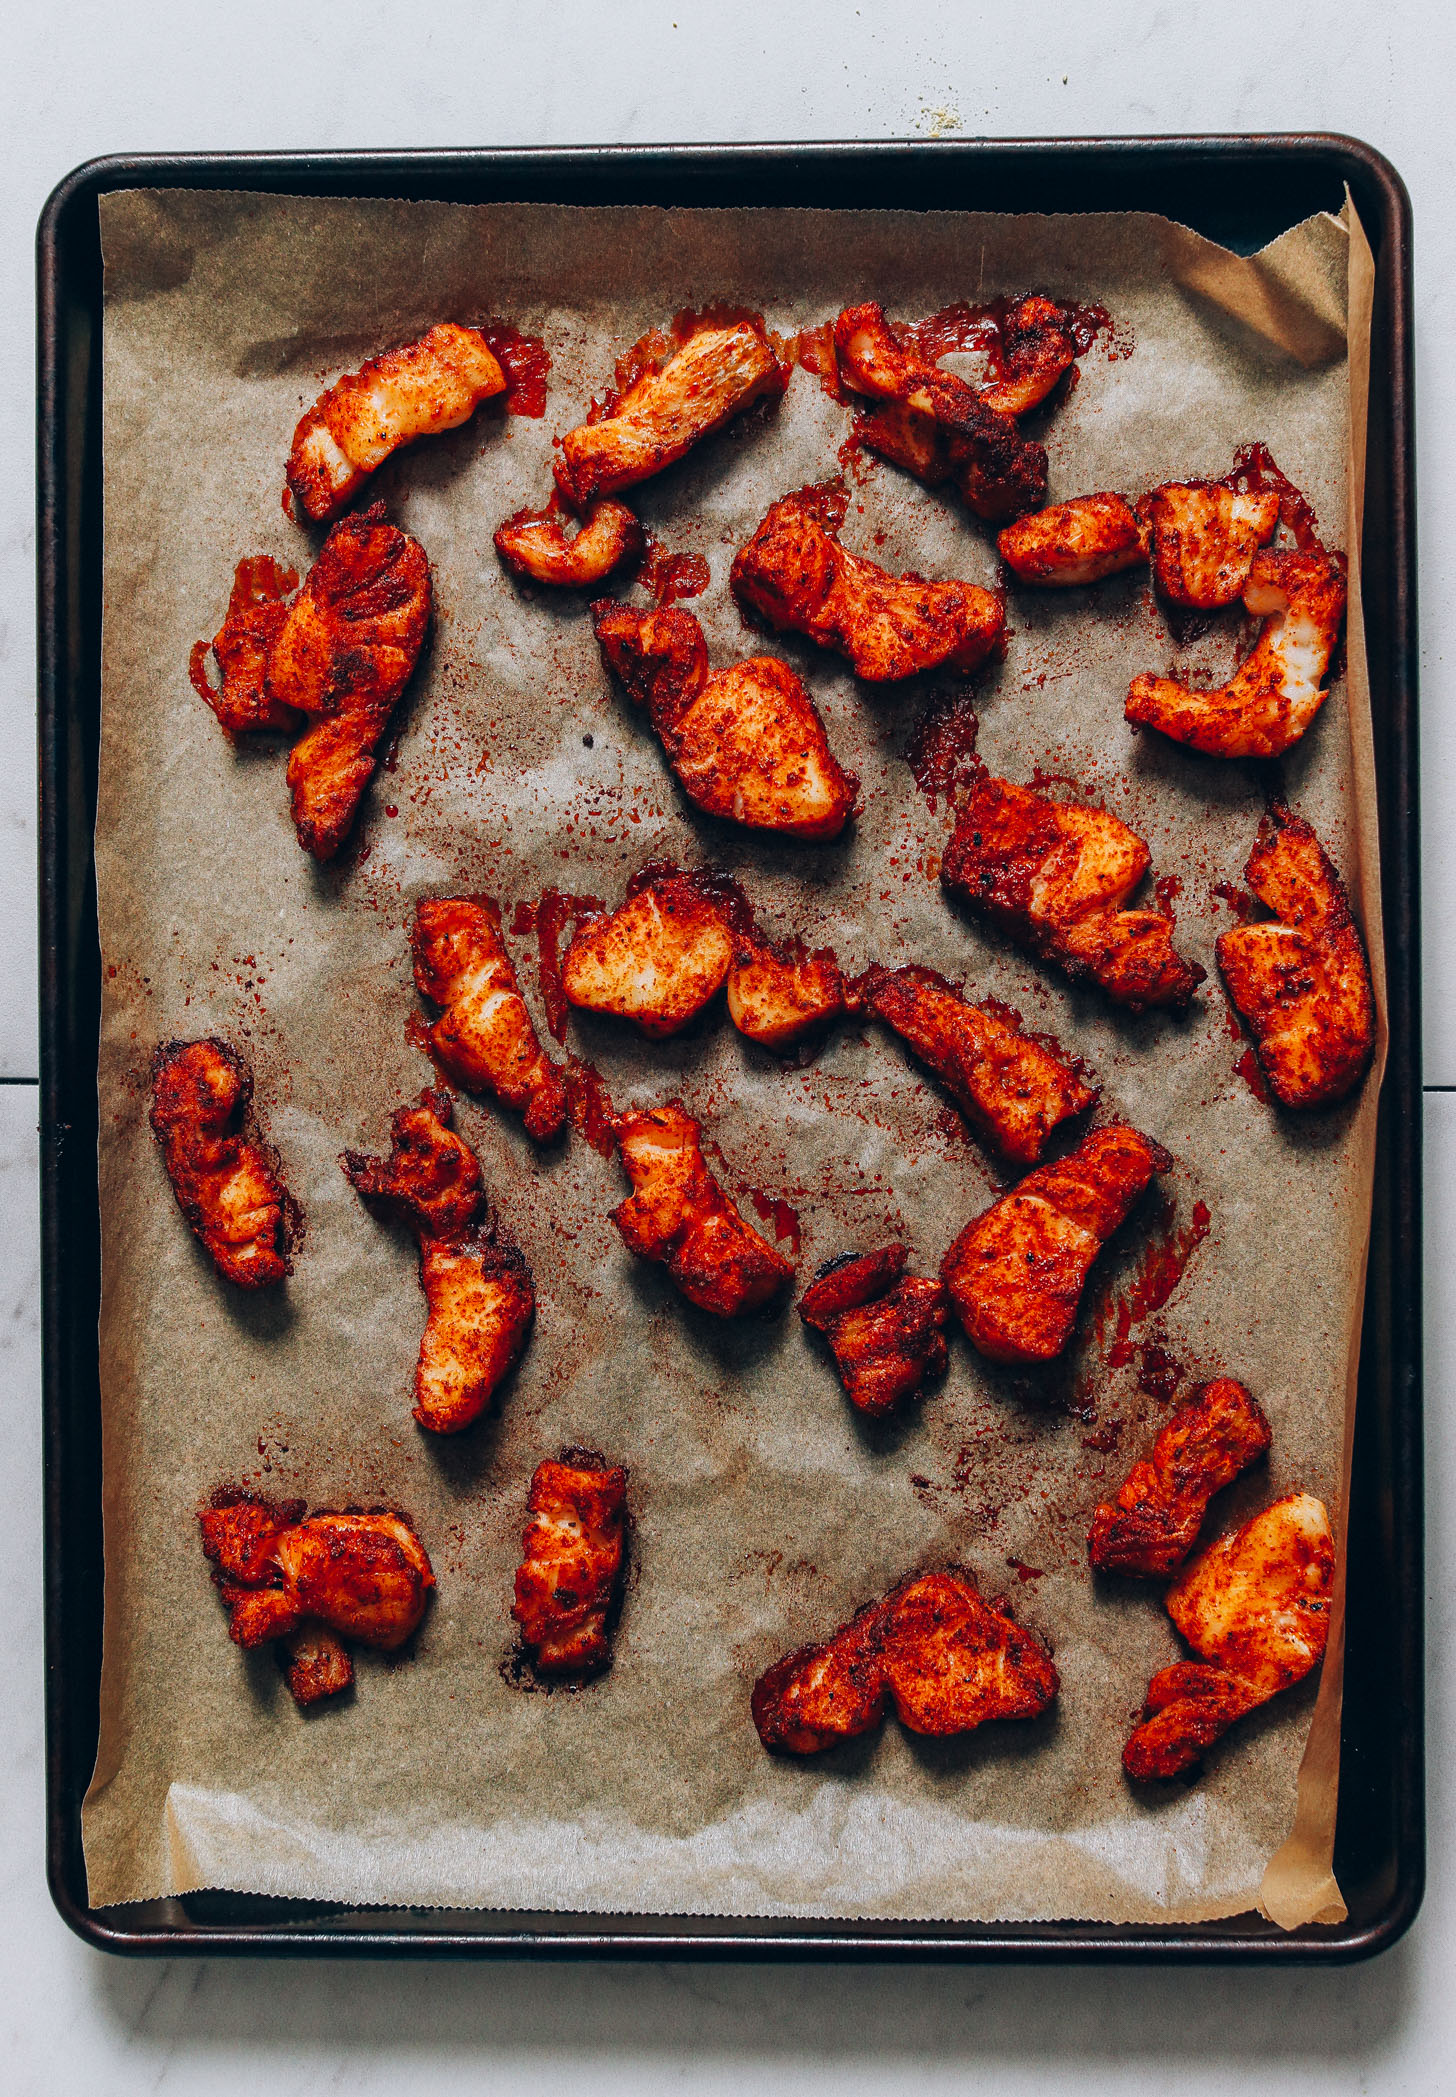 Parchment-lined baking sheet with freshly baked cod coated in spices for making Fish Tacos